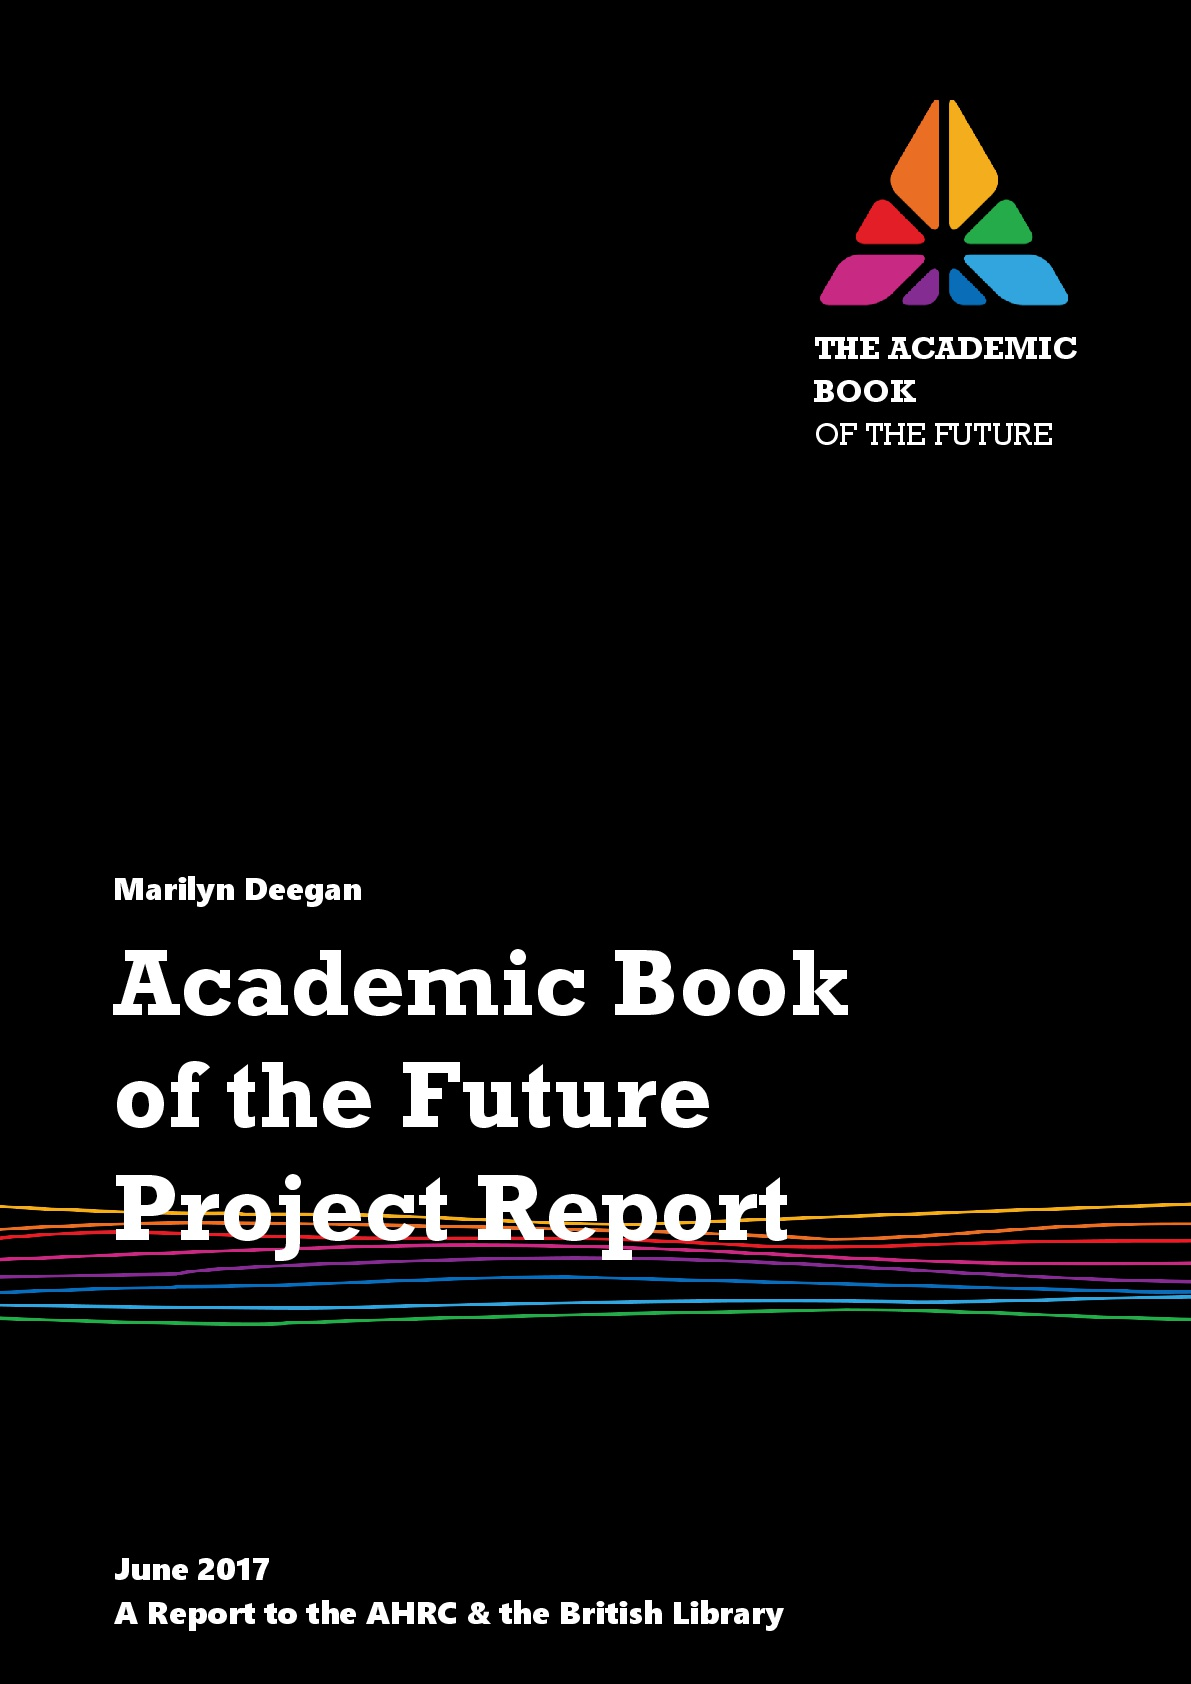 Academic Book of the Future Project Report 2017